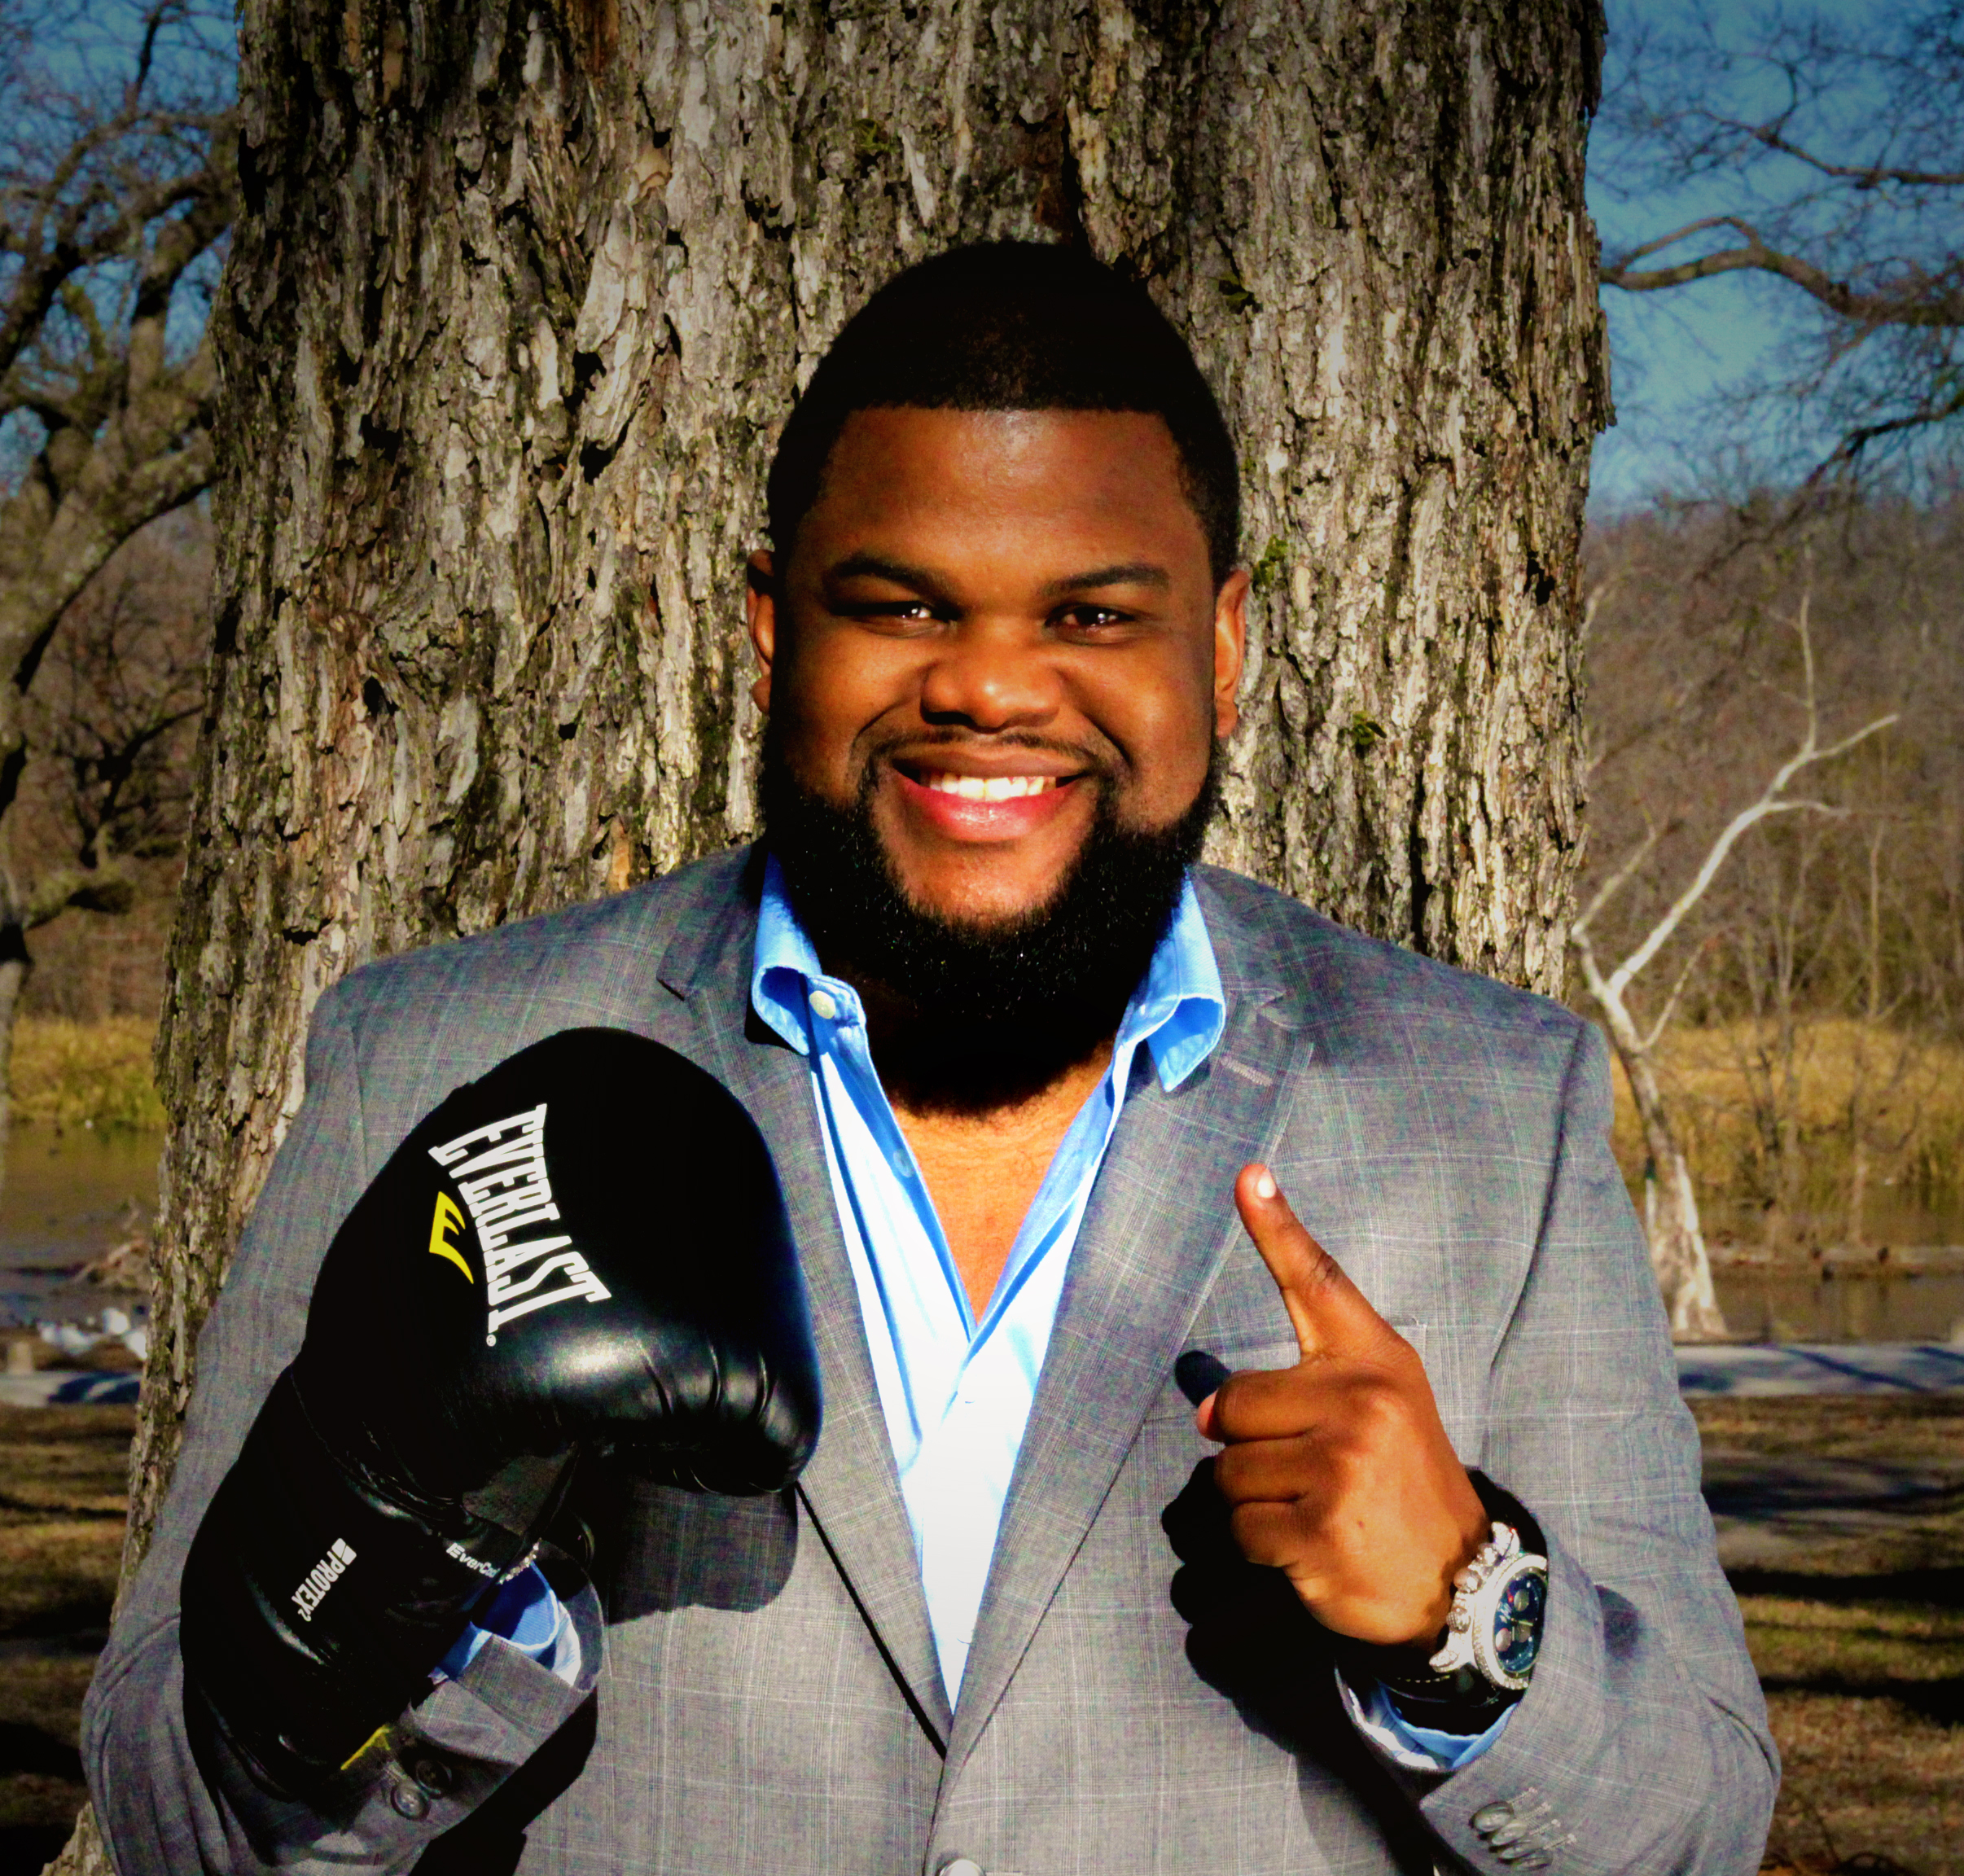 Forbes 30 Under 30 (Sports) Adrian Clark's New Book 'Protect Yourself at All Times: A Guide for Professional Boxers'